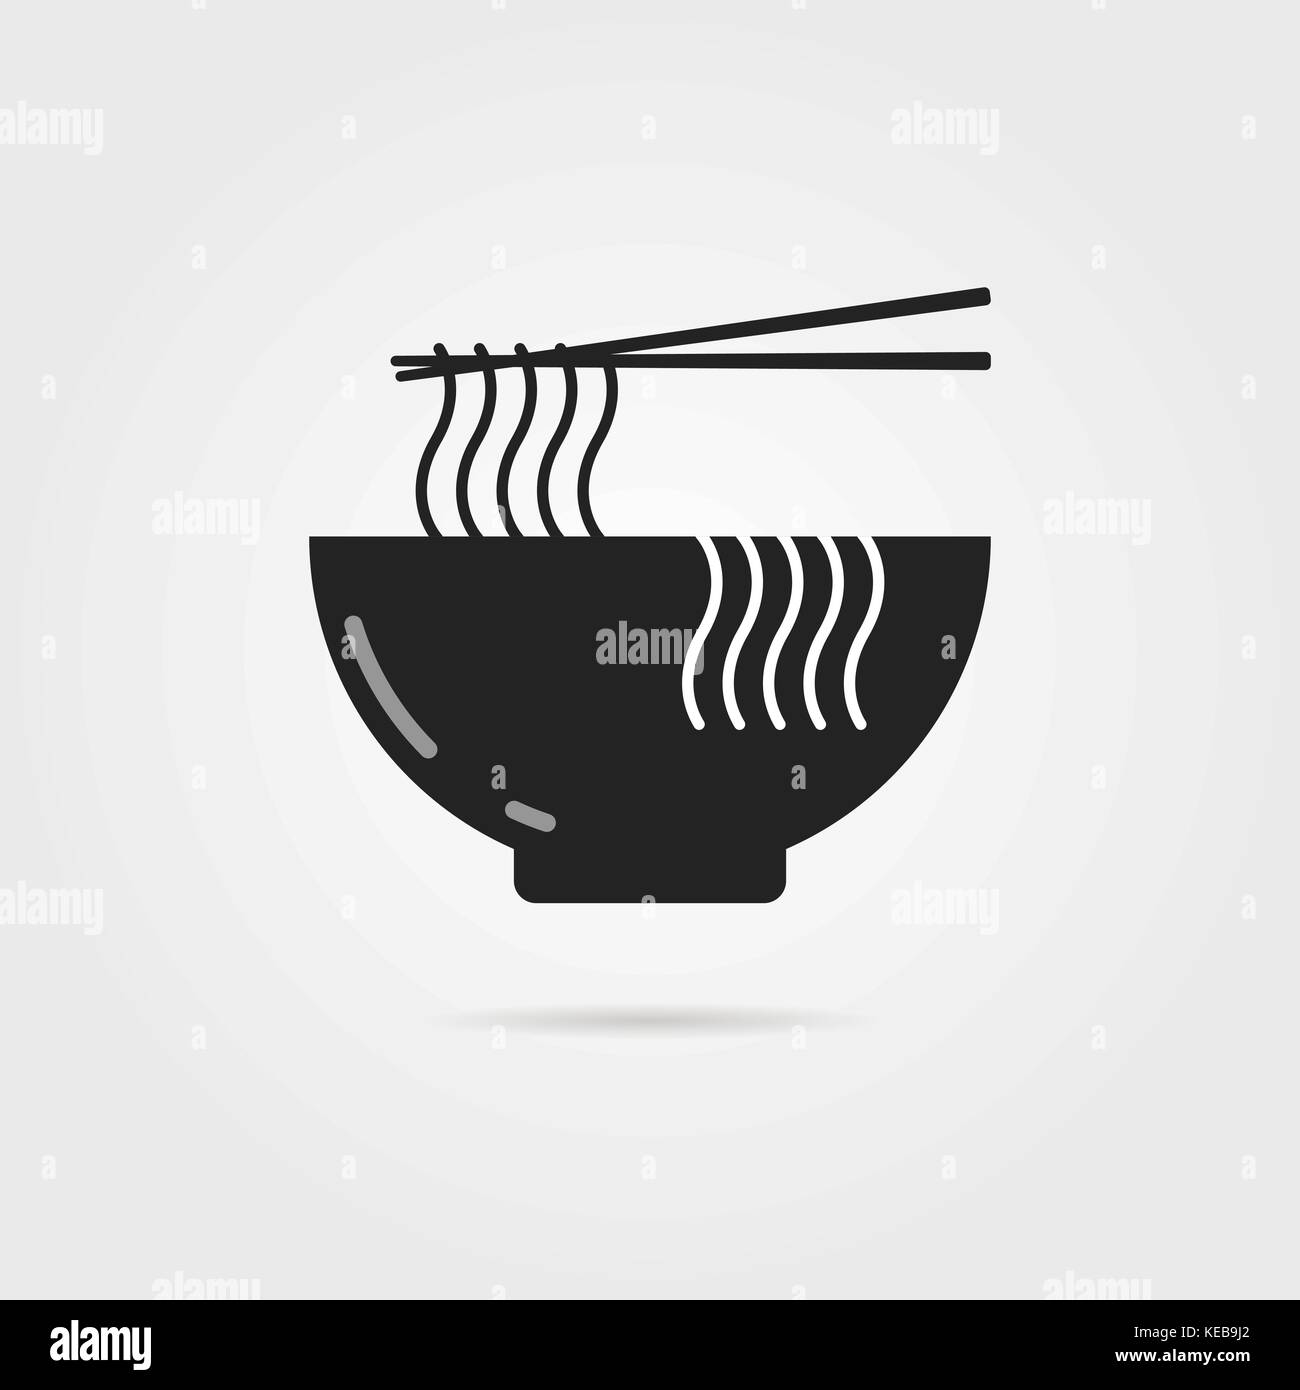 black bowl icon with chinese noodles and shadow - Stock Image